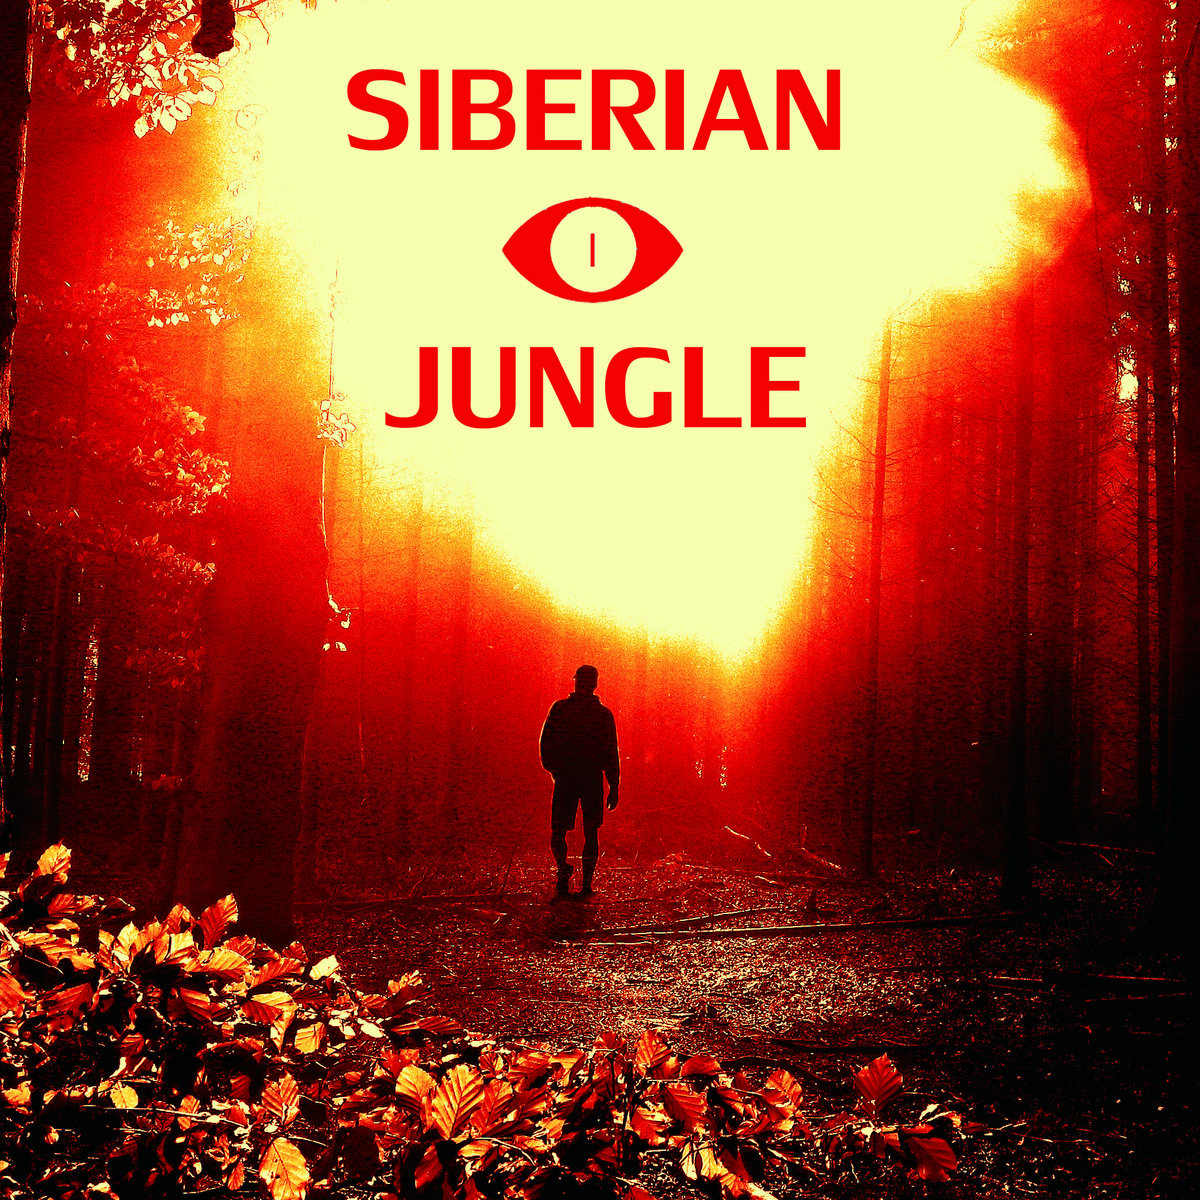 EXIT Project - Fairy Tale (Slawa Neo Vision DNB remix) @ 'Siberian Jungle - Volume 1' album (atmospheric drum'n'bass, electronic)